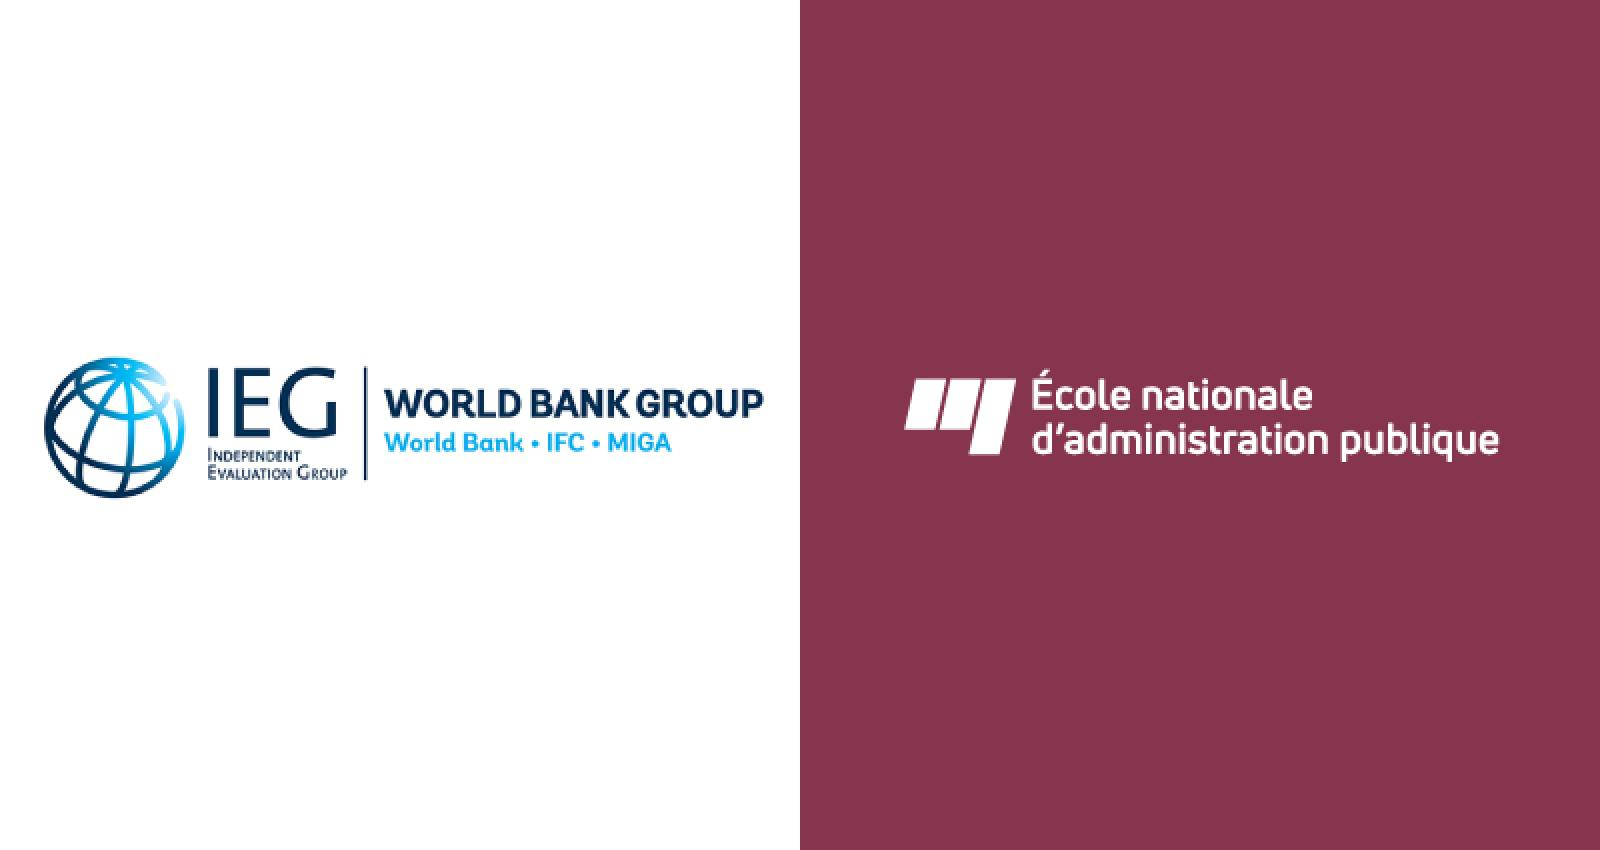 Independent Evaluation Group and École nationale d'administration publique formalize collaboration towards building a new global partnership